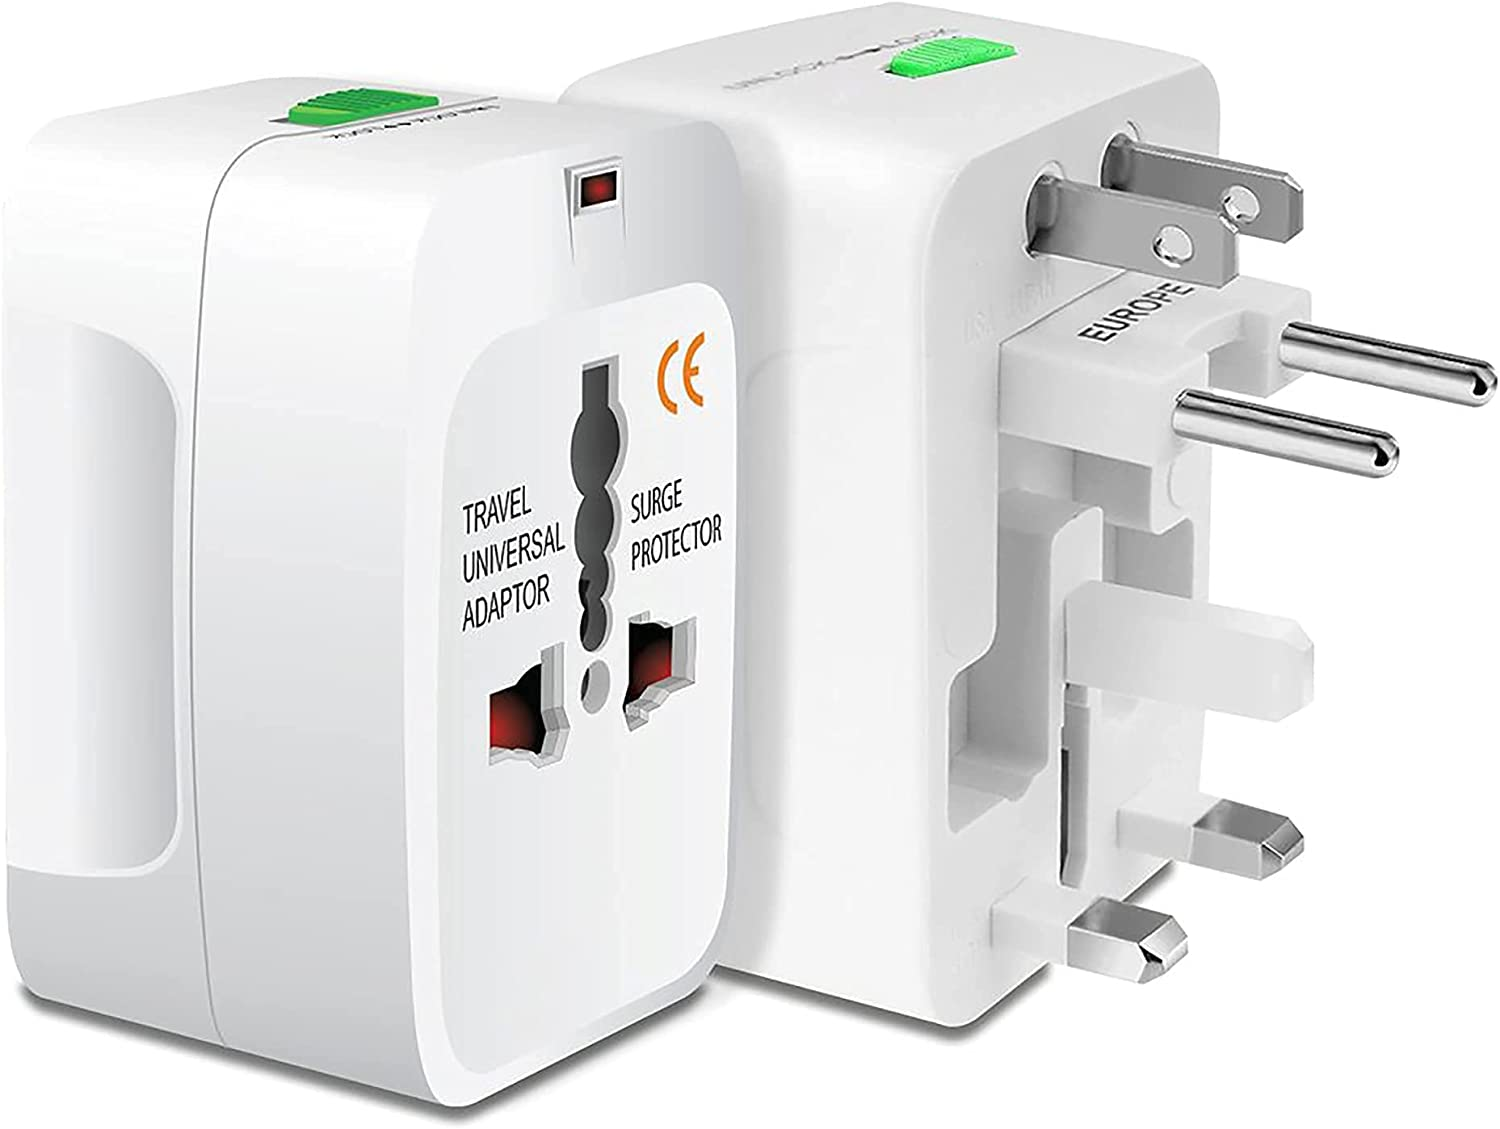 Worldwide Power Adapter Works for Nokia 6290 is Universal for 90% of Travel Between US/EU/CN/AUS/NZ/UK Type